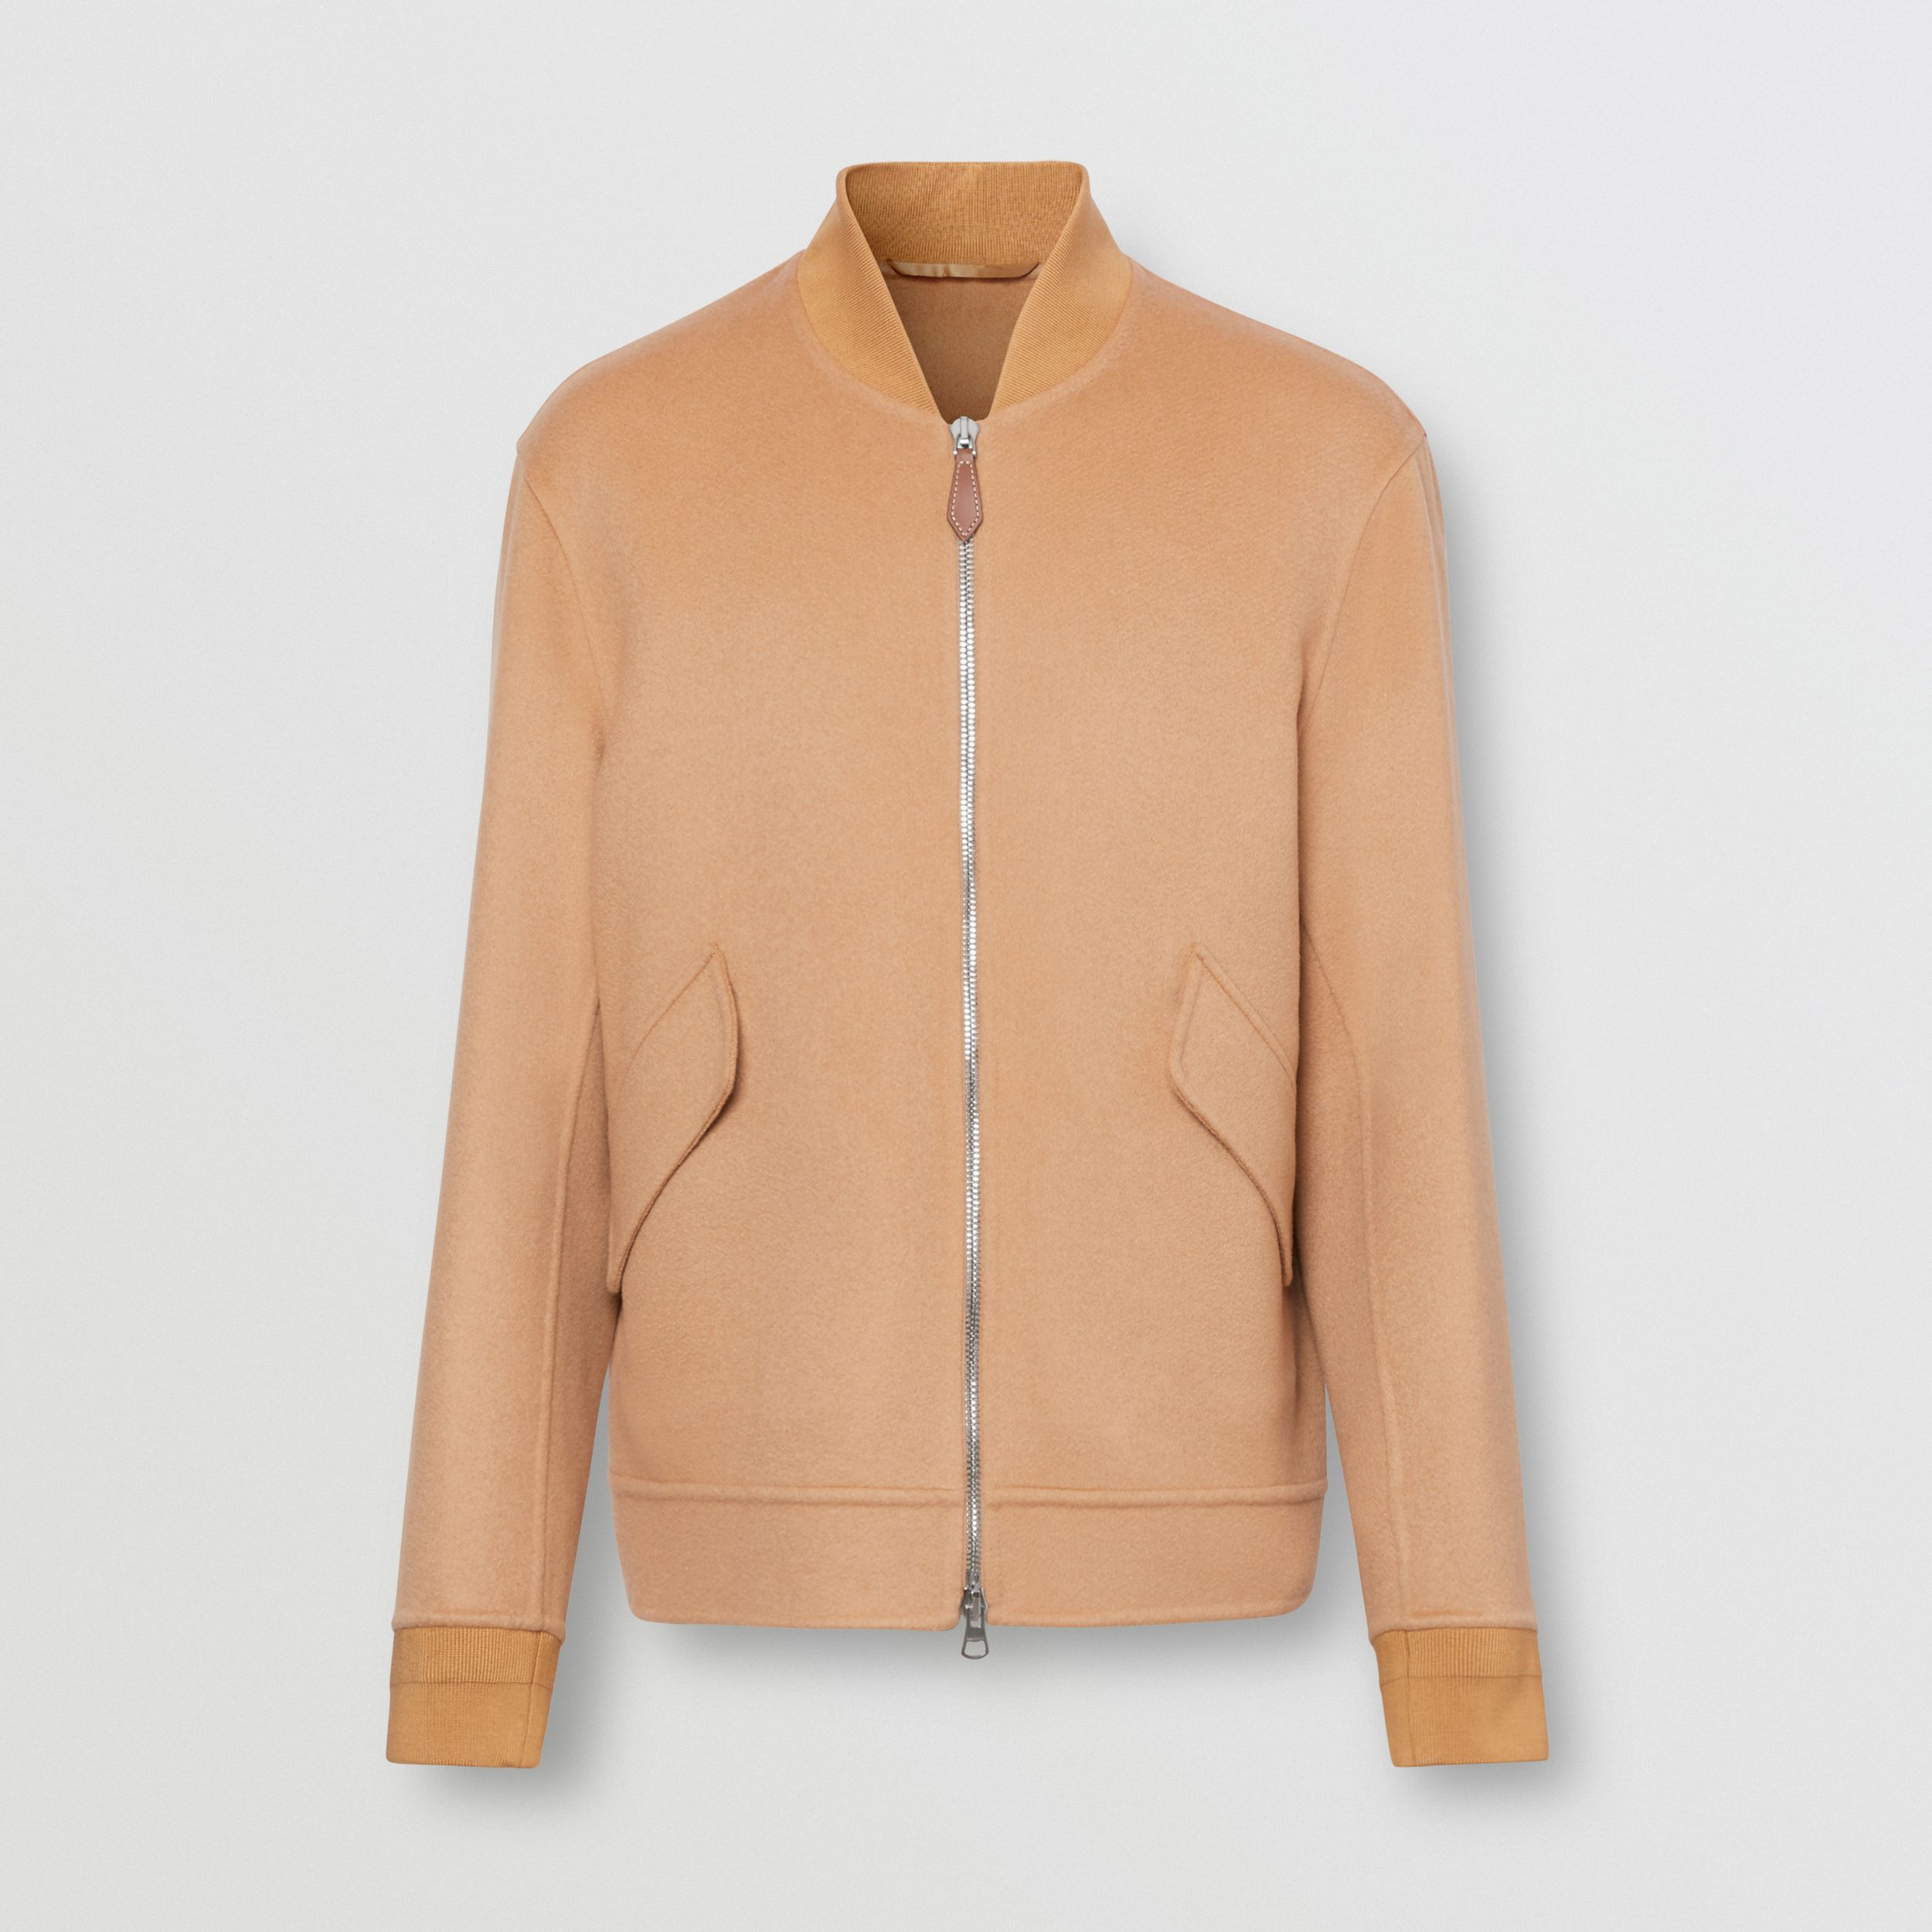 Double-faced Cashmere Bomber Jacket in Dark Camel - Men | Burberry - 4